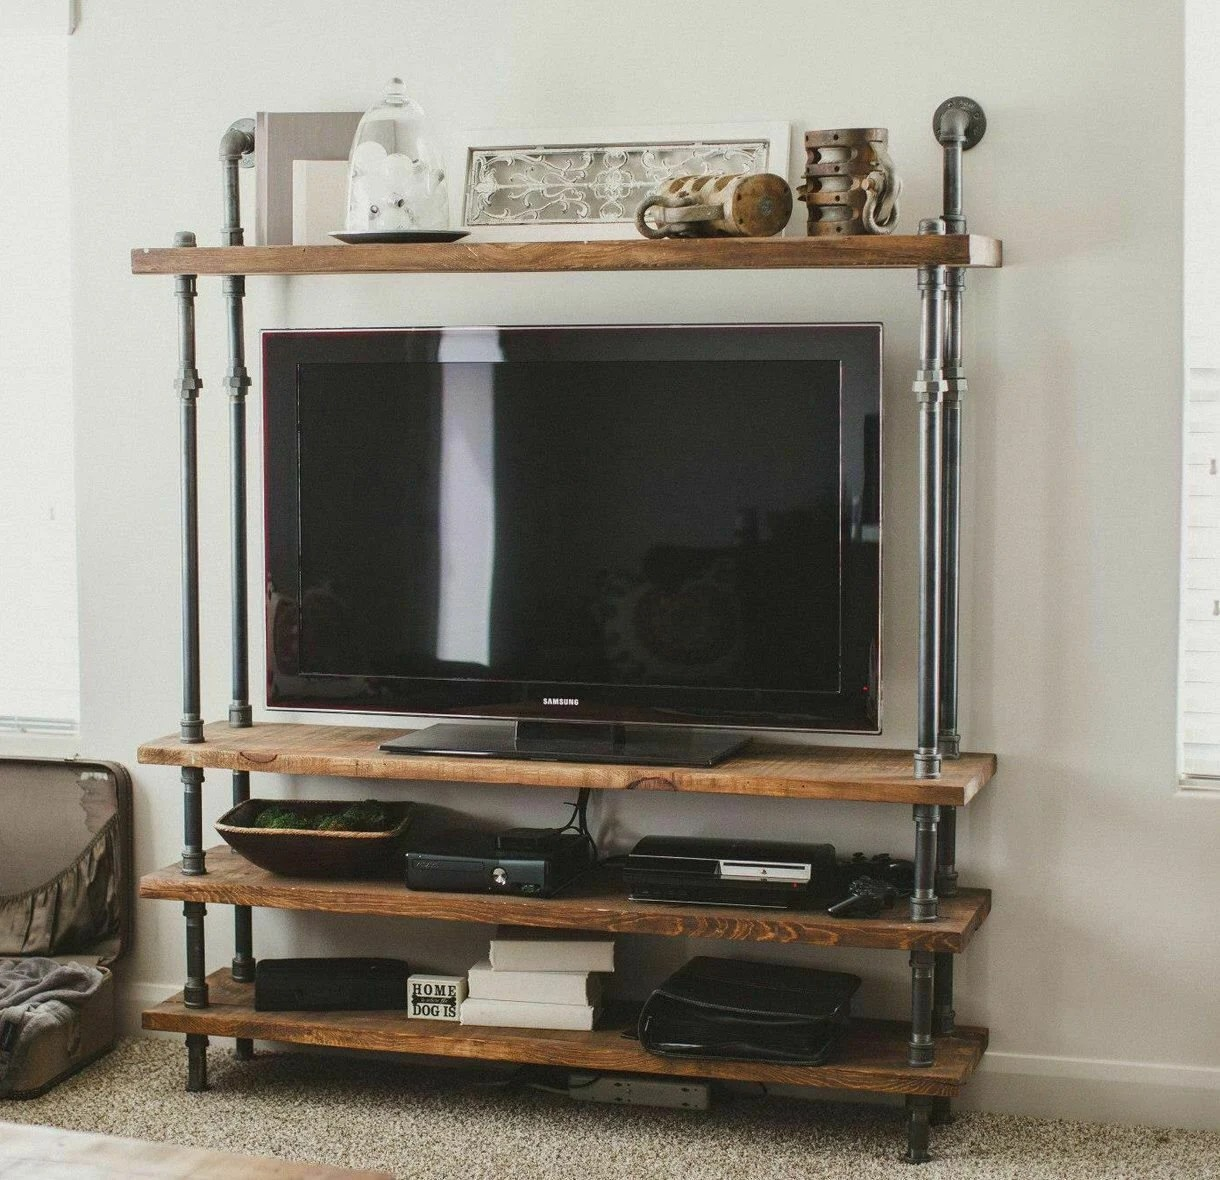 4 Shelf Bookcase Iron Pipe Shelve Industrial Pipe Shelve Tv Stand Storage Unit Supply Area Wooden Bookcase Free Shipping To Us Continental